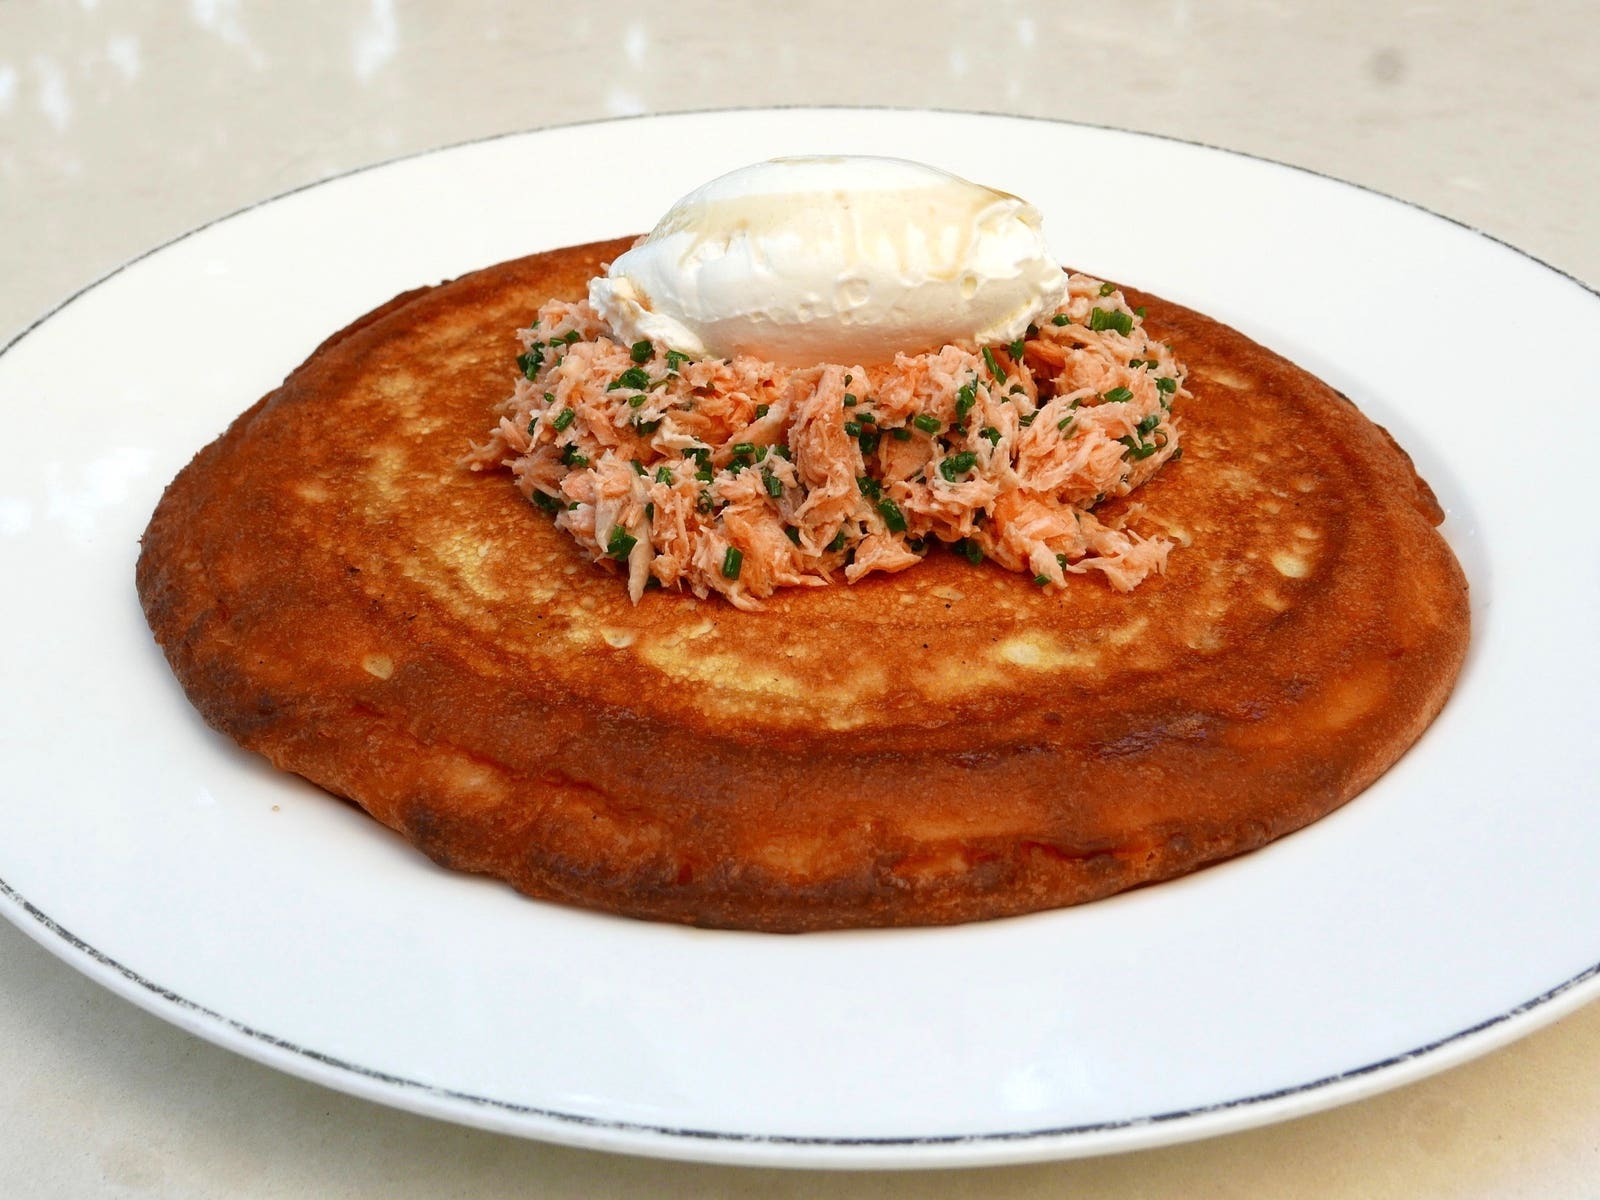 Kippered Salmon Pancake at Freedman's